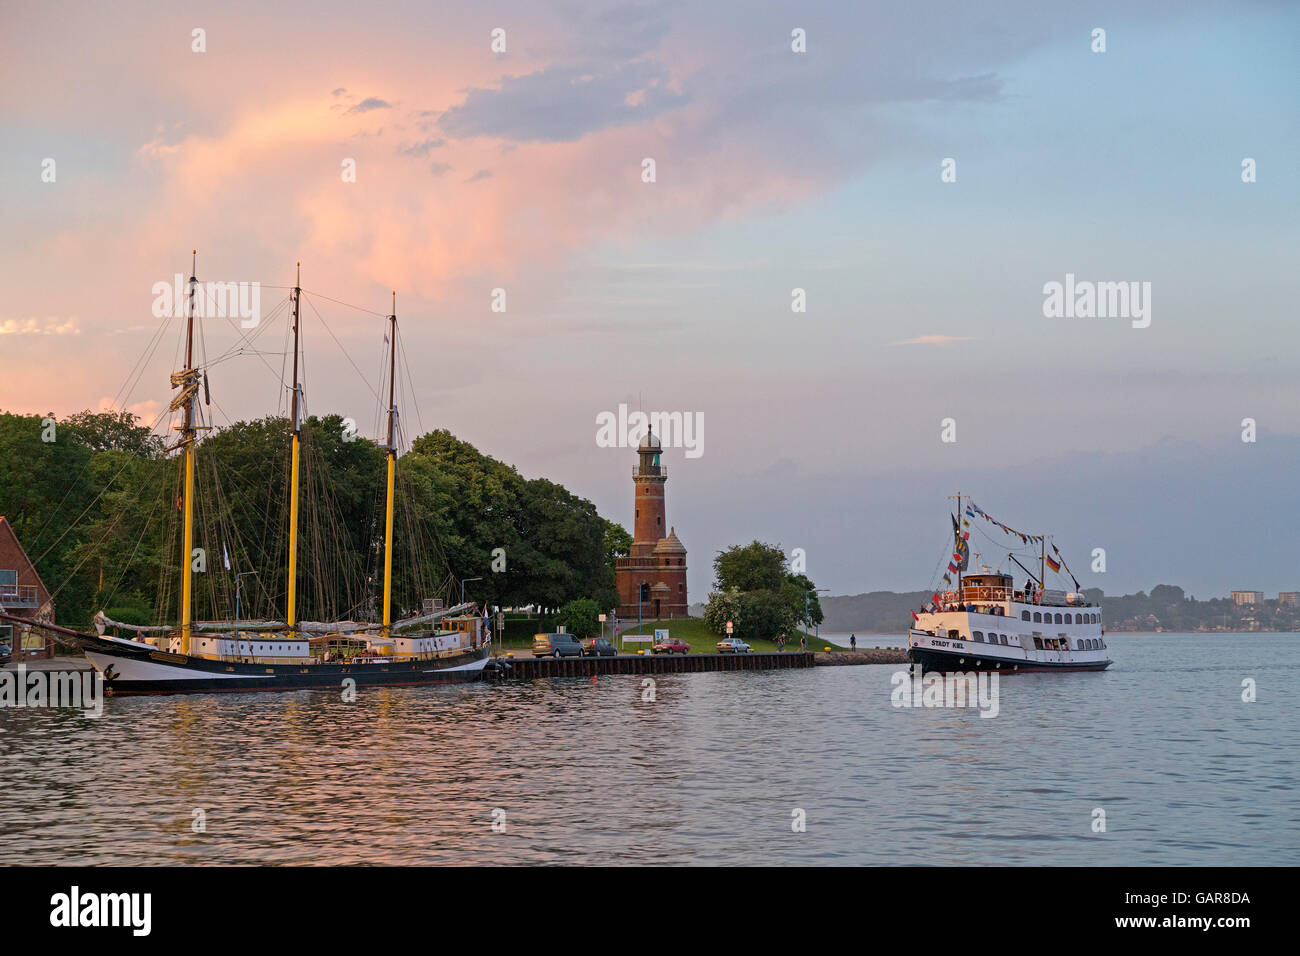 Holtenau Lighthouse, excursion boat, Kiel, Schleswig-Holstein, Germany - Stock Image